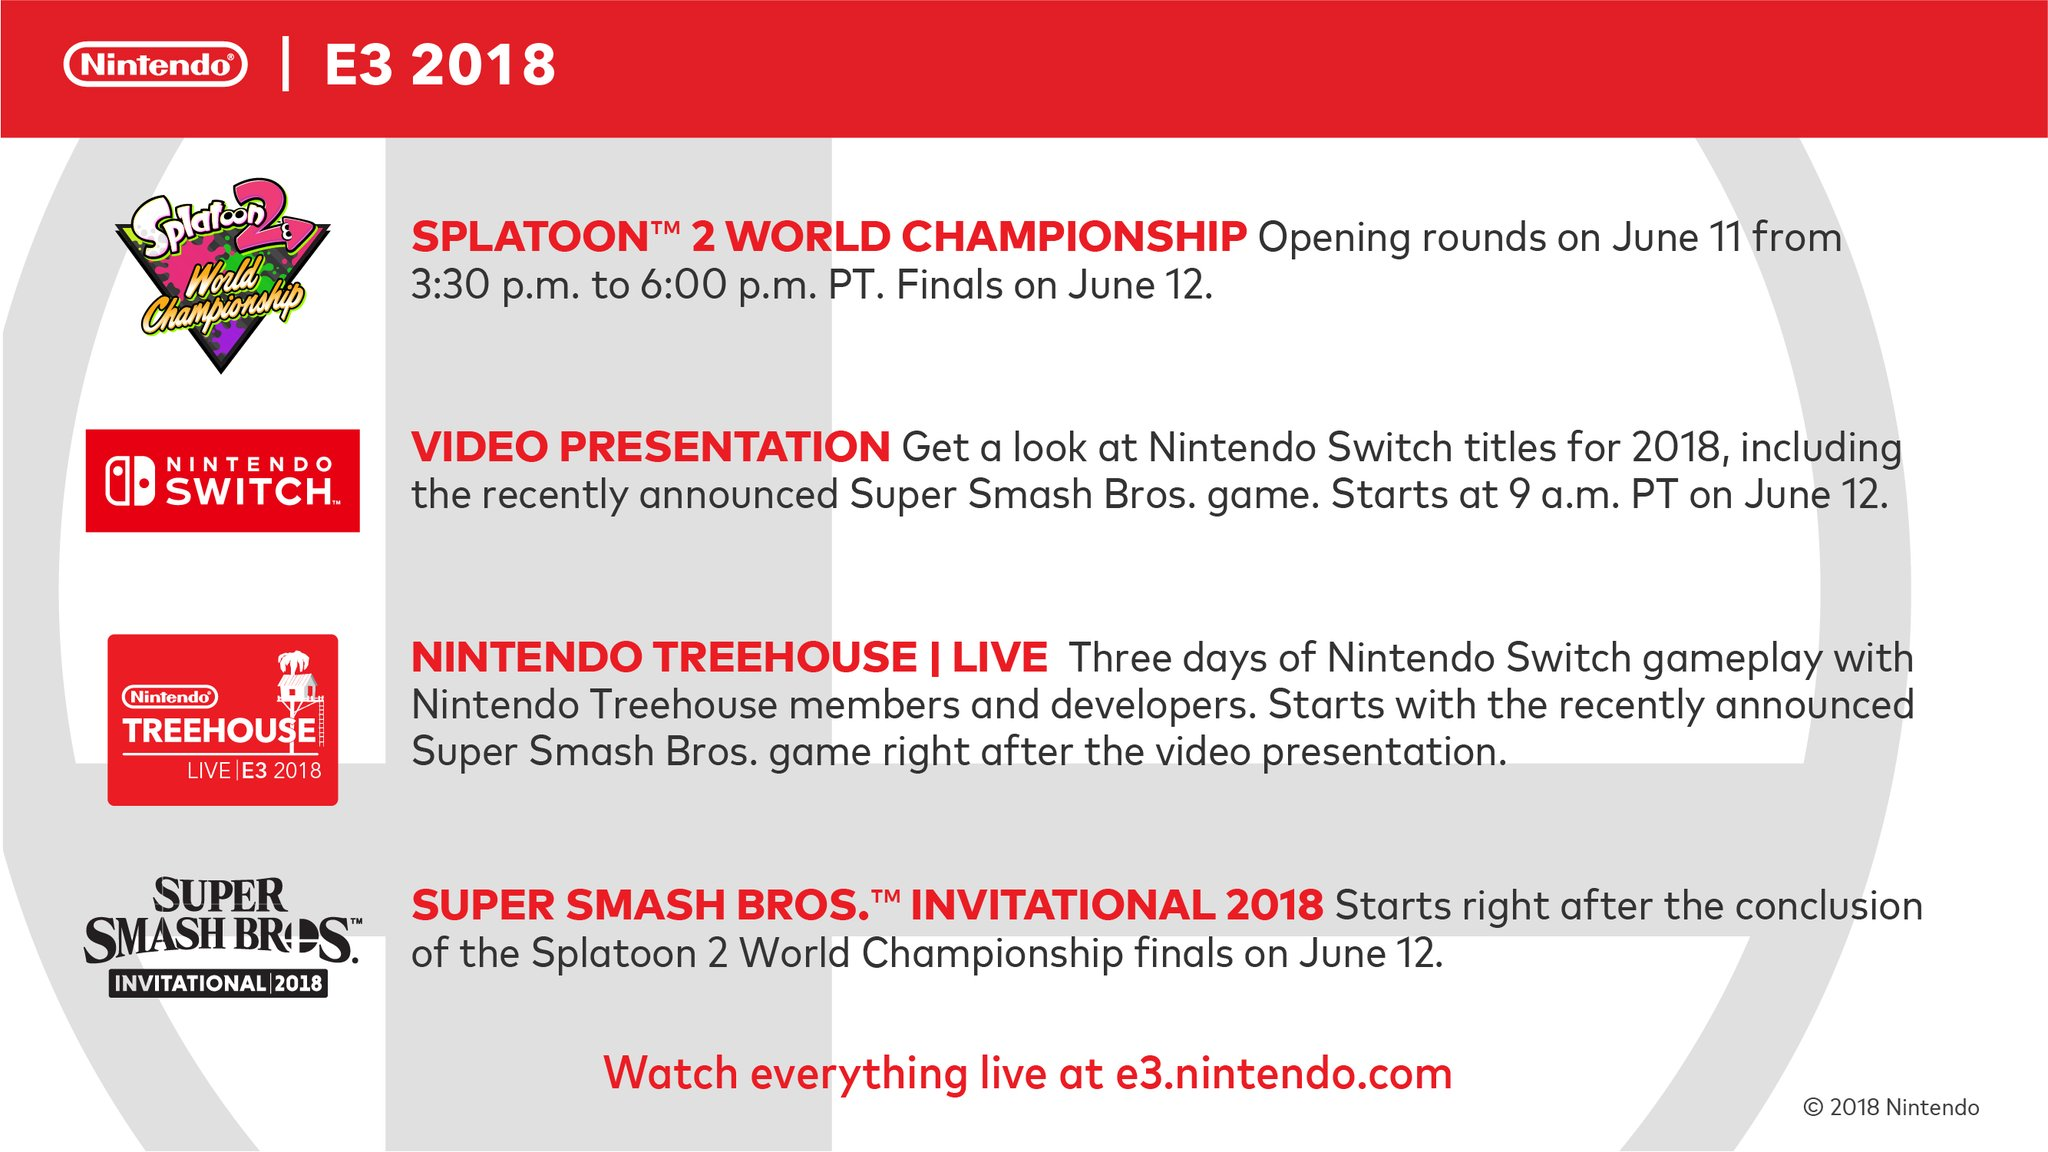 Nintendo announces E3 2018 plans